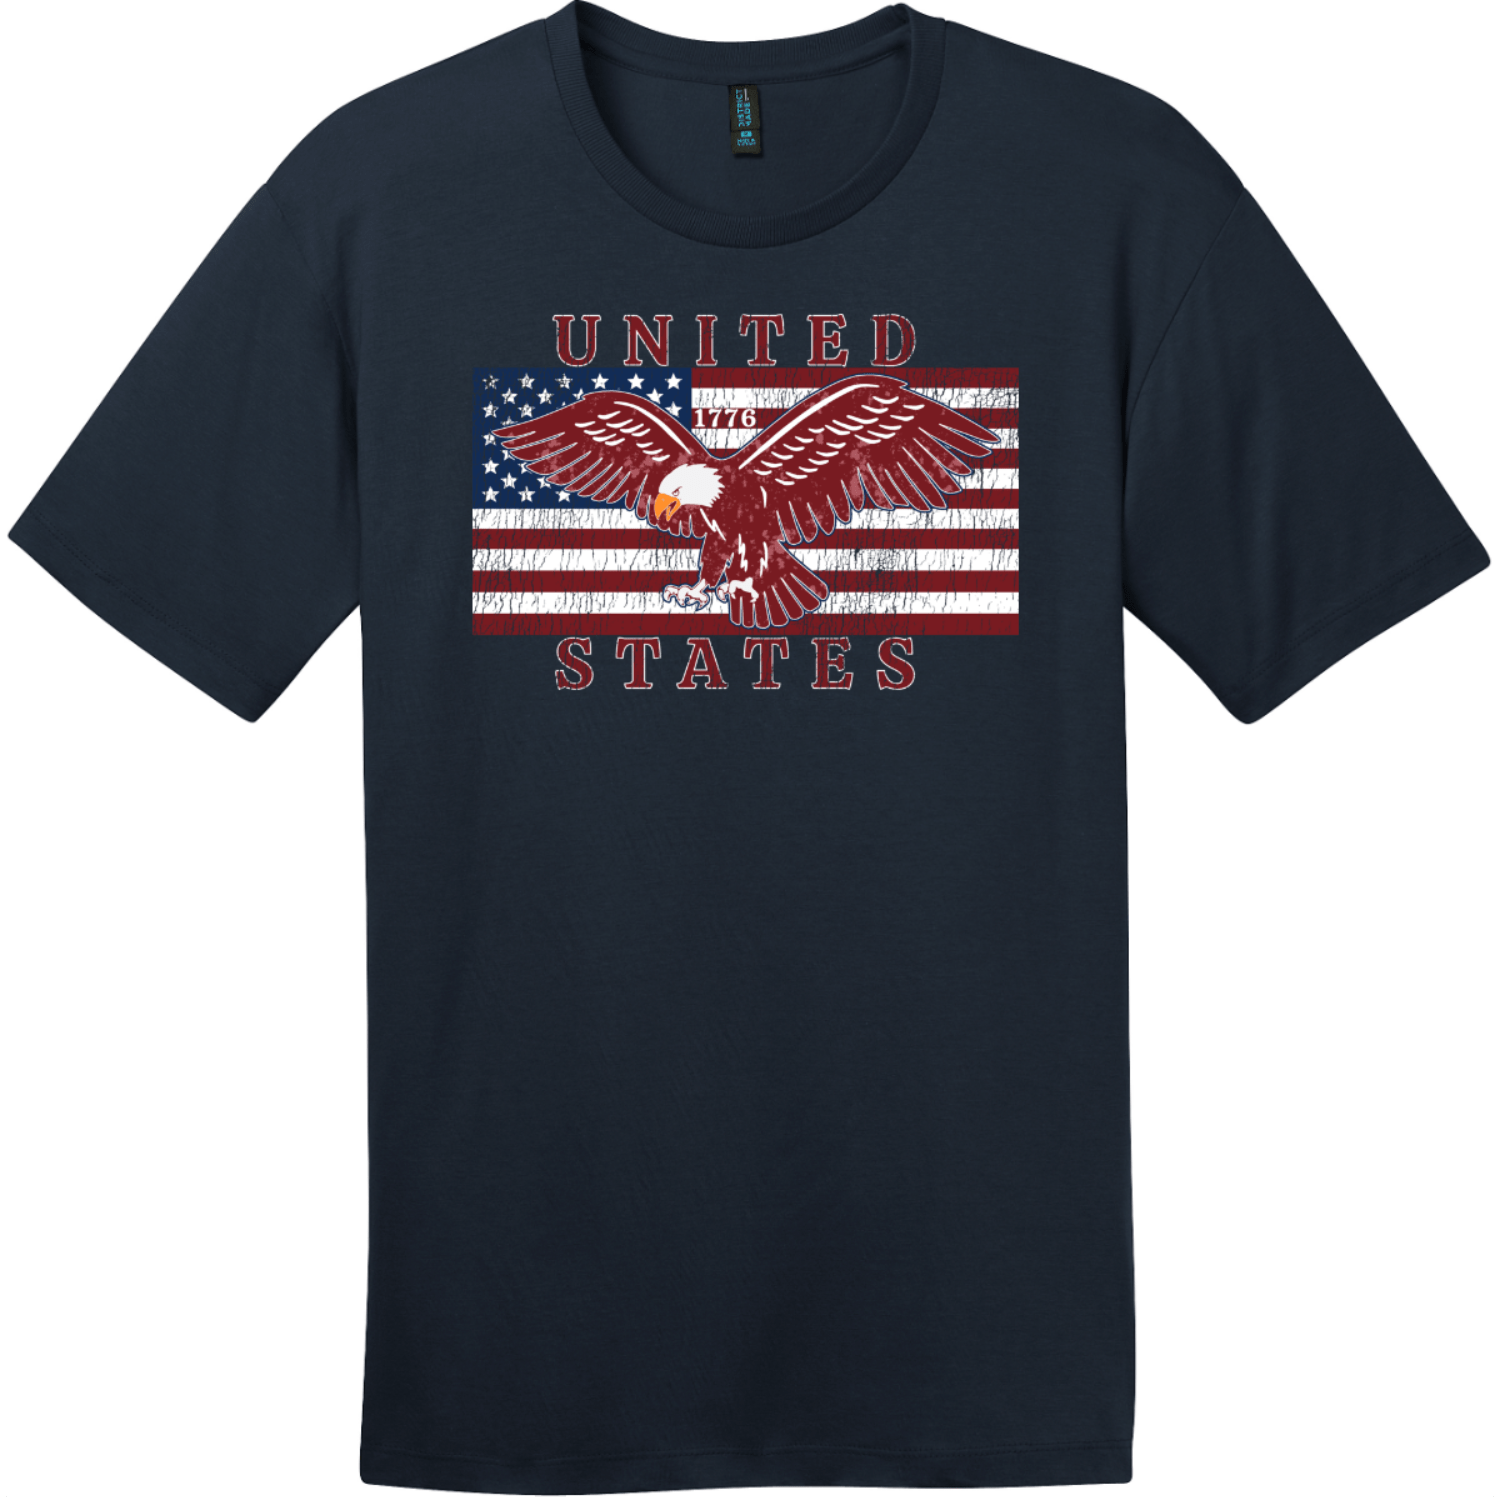 United States Flag Eagle Vintage T-Shirt New Navy District Perfect Weight Tee DT104